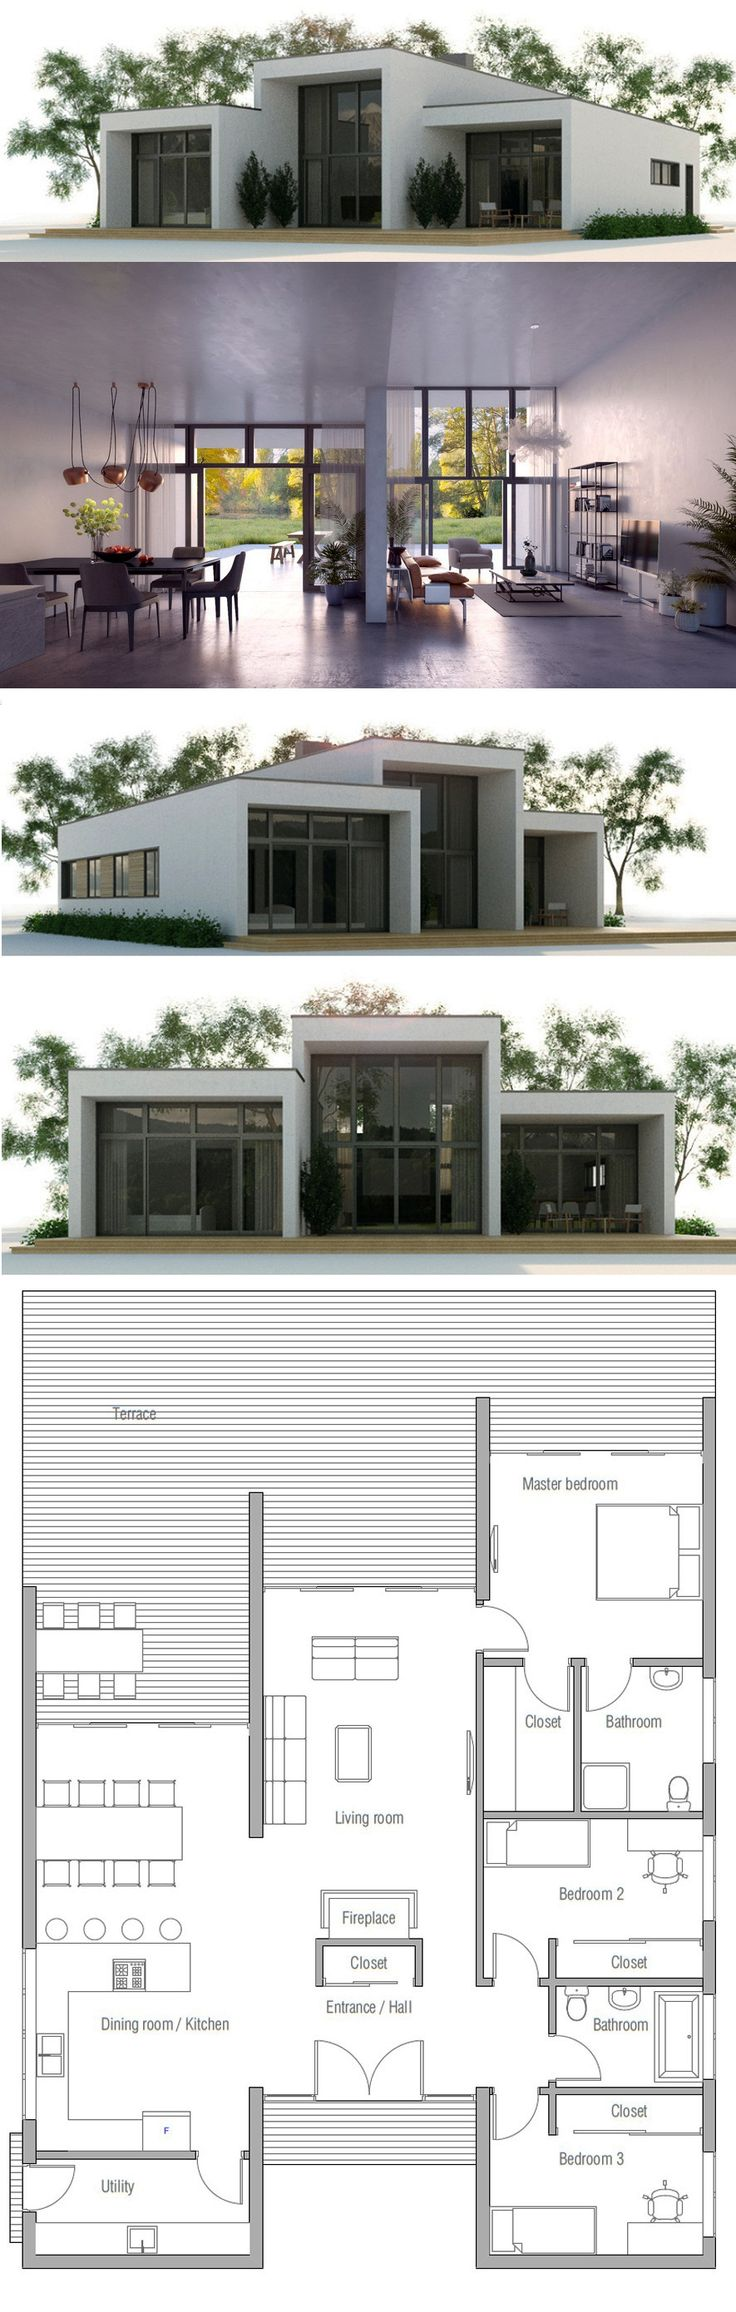 191 best house plans, contemporary modern houses images on